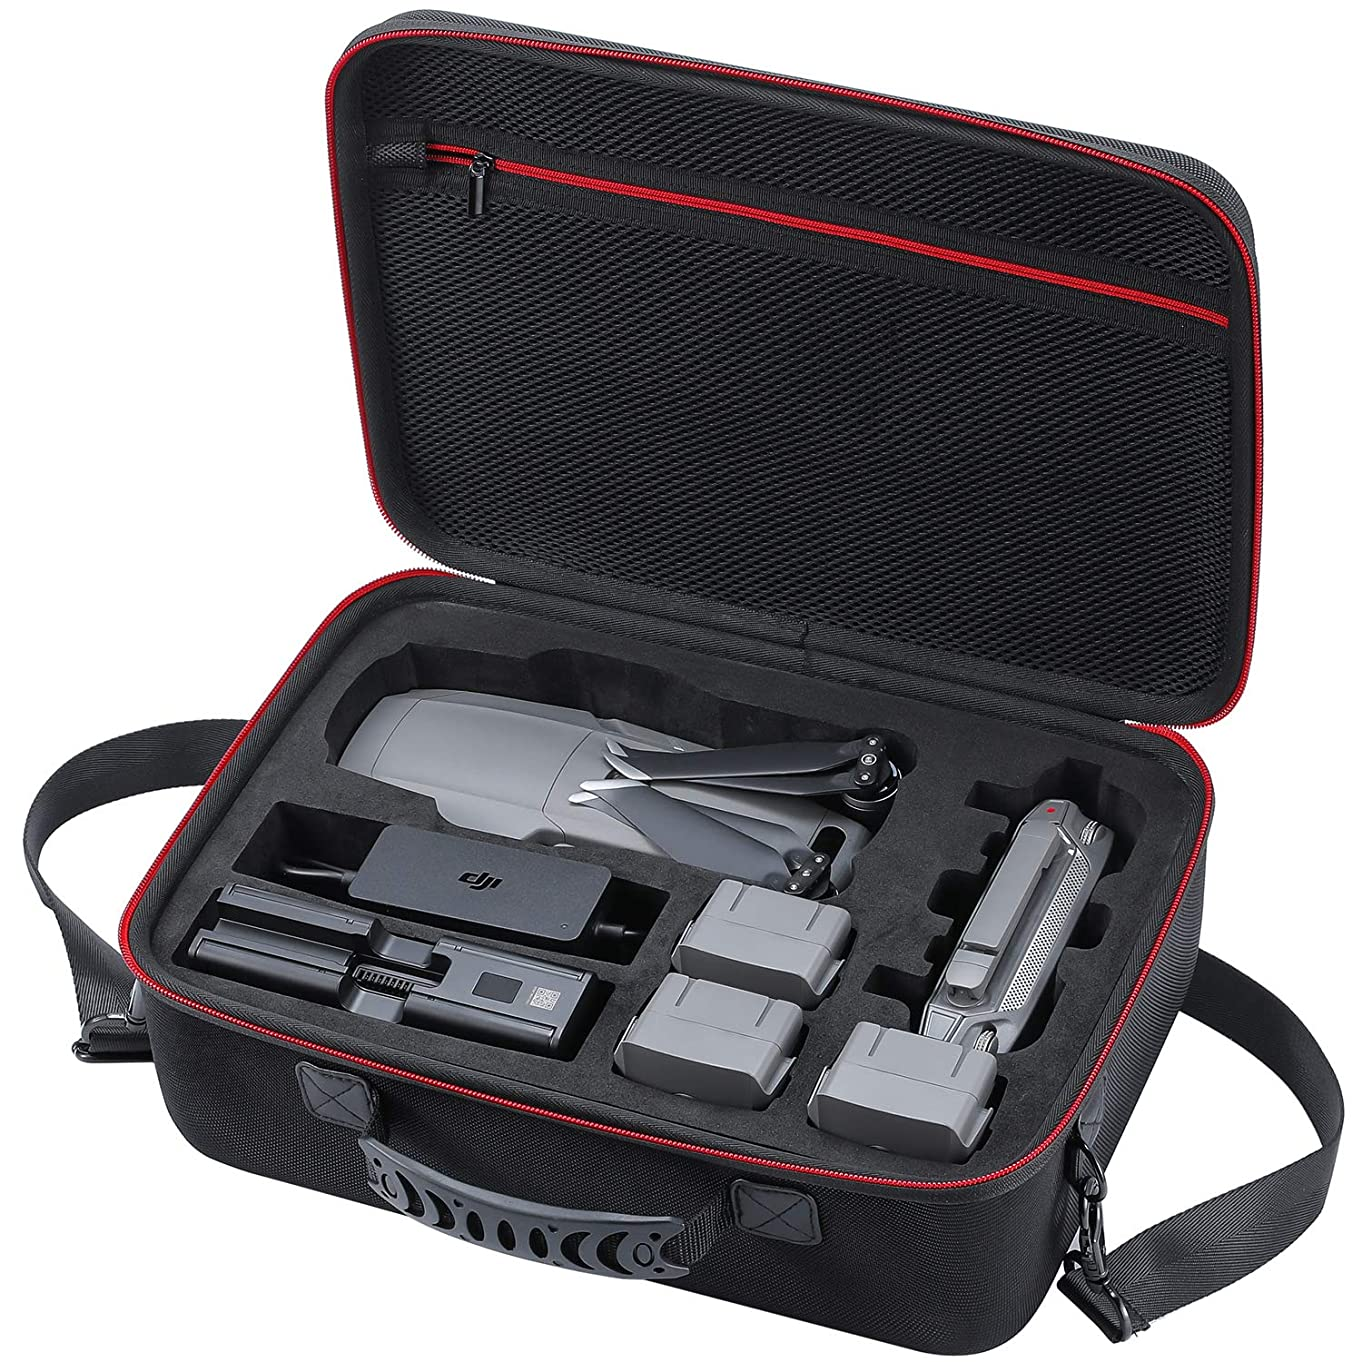 Zadii Hard Carrying Case Compatible with DJI Mavic 2 Pro/DJI Mavic 2 Zoom Drone, Travel Bag Fit Fly More Combo, Hold 4 Batteries, Car Charger, Charging Hub and Power Adapter